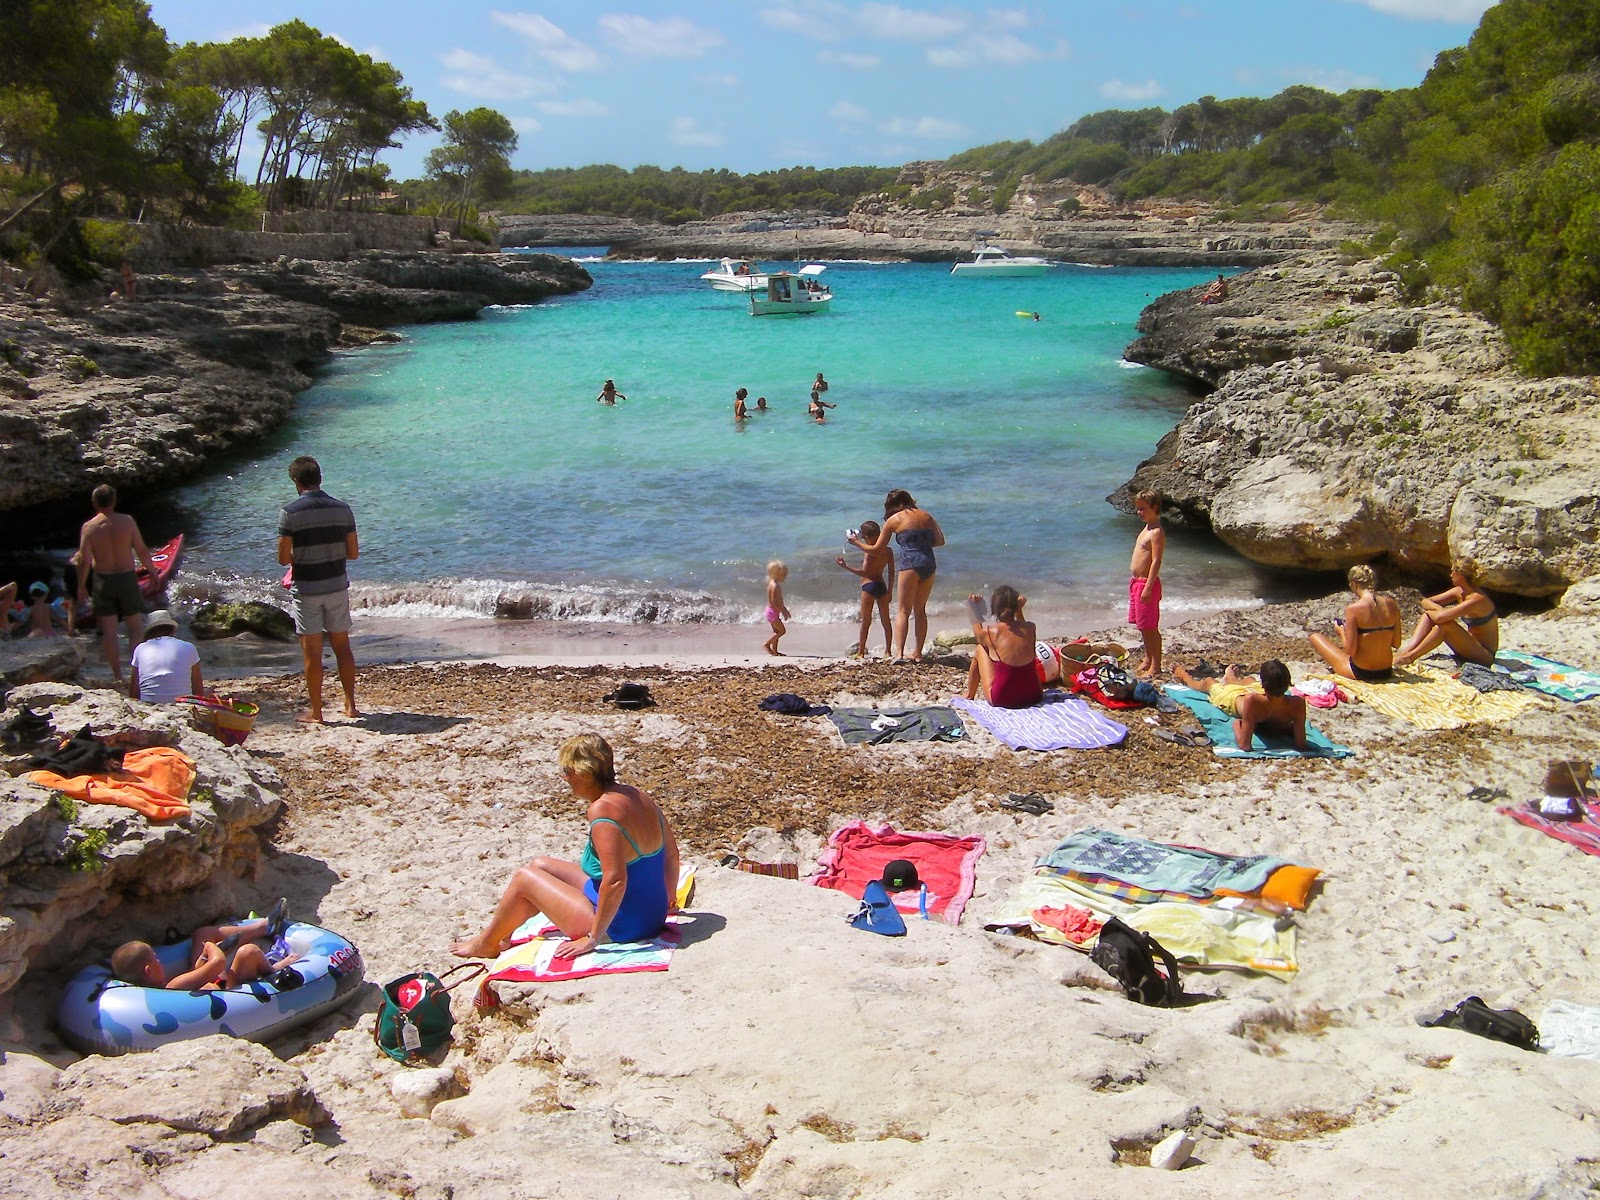 sheltered sandy beach scene sunbathers mondrago national park majorca